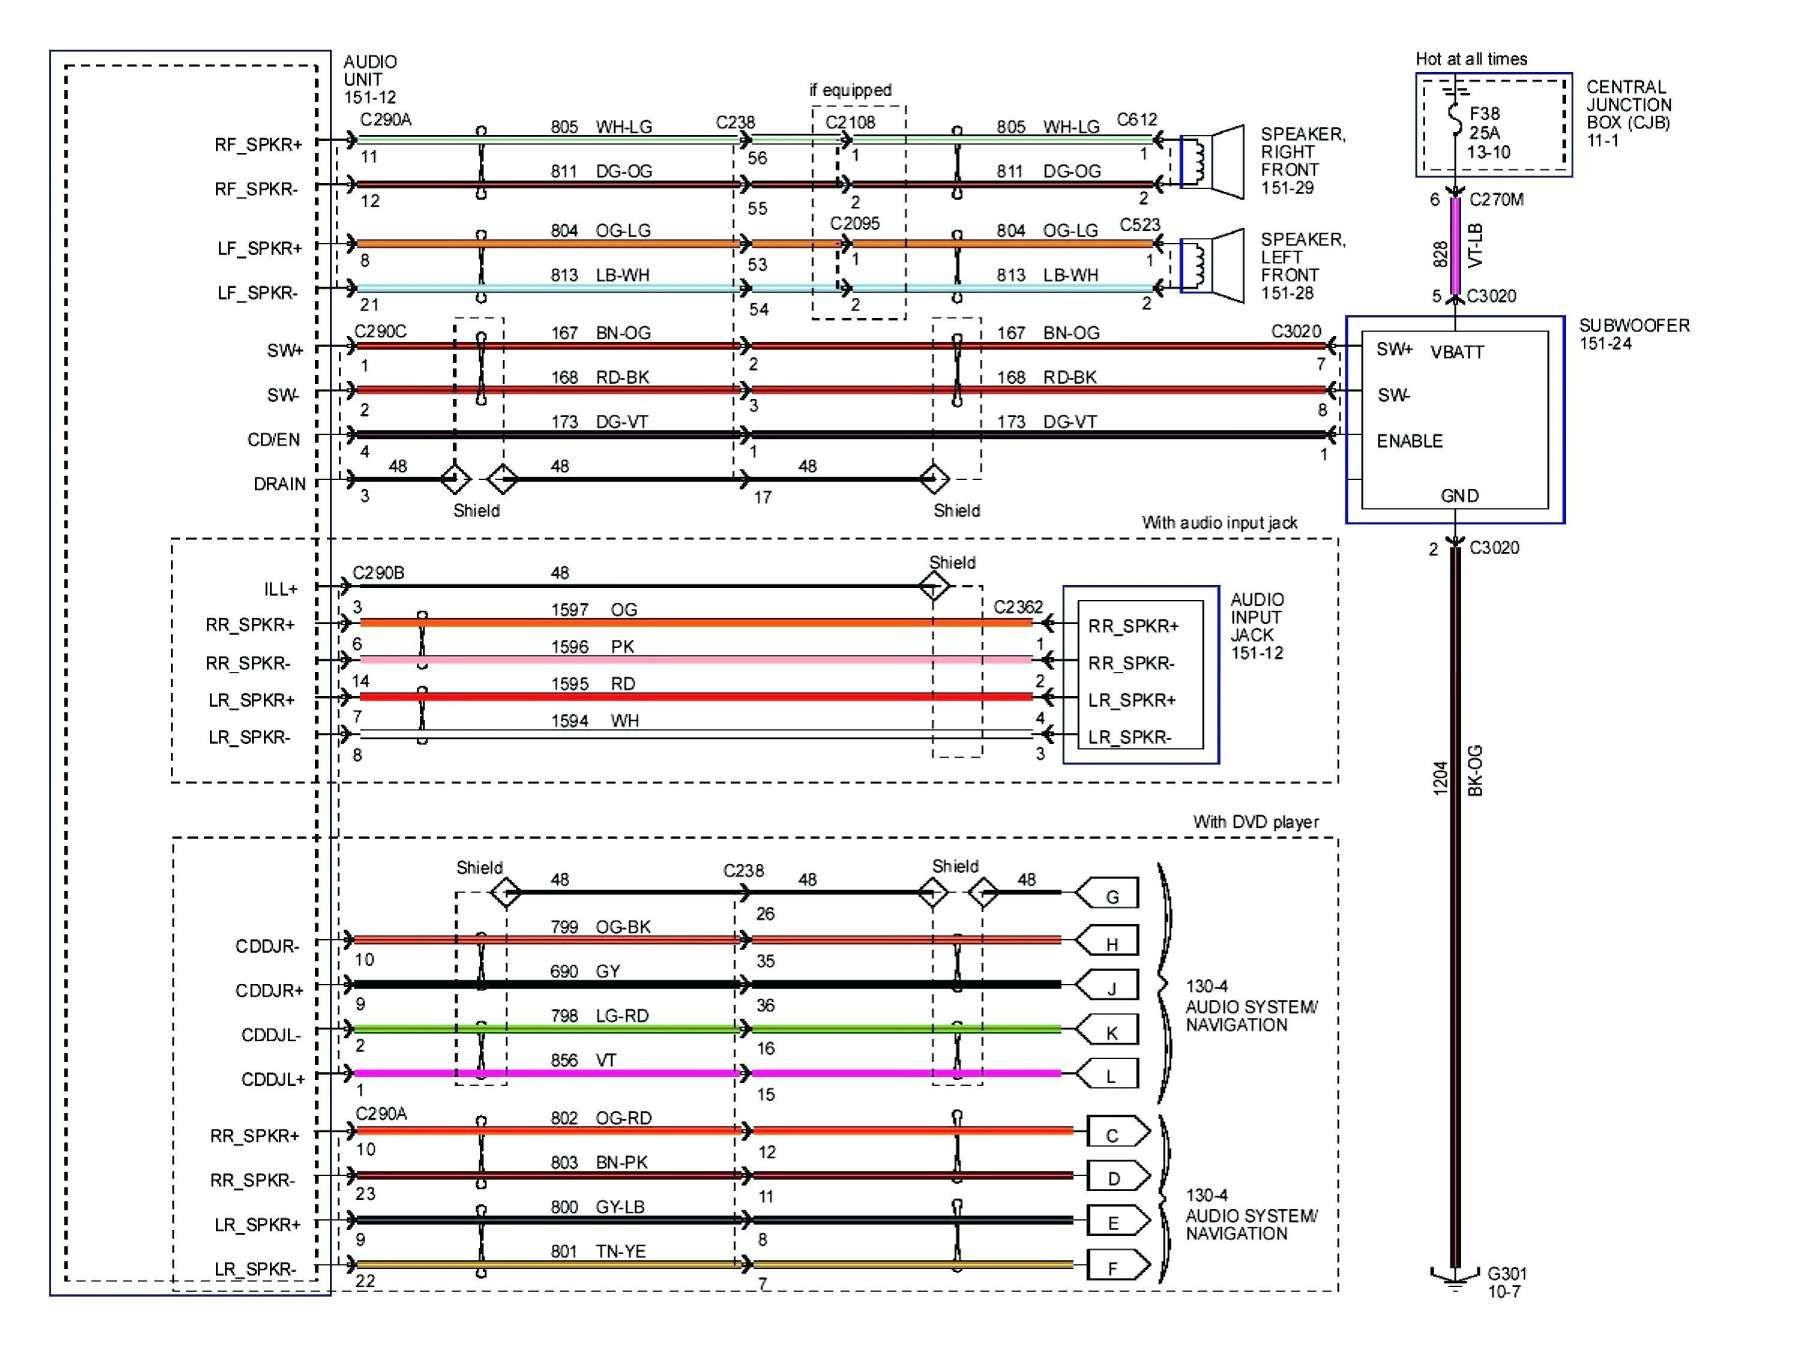 2006 gmc 1500 sierra wiring diagrams - wiring diagram system rich-image-a -  rich-image-a.ediliadesign.it  ediliadesign.it